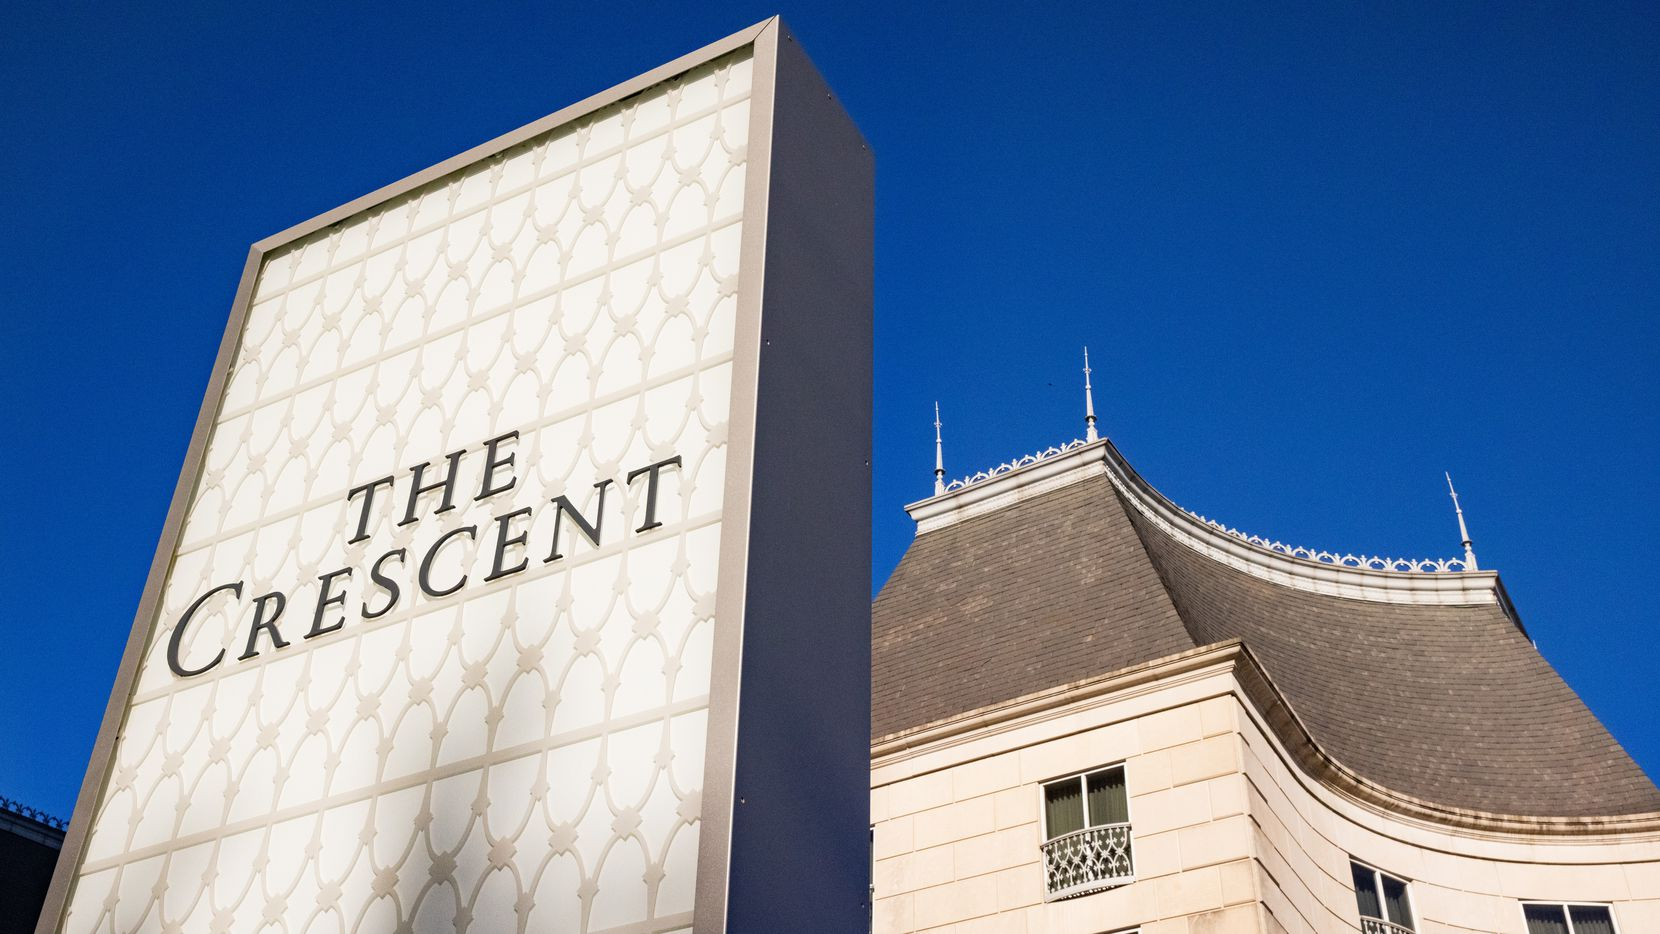 Fort Worth-based Crescent Real Estate has owned its namesake Crescent office, hotel and retail project in Dallas three different times in the last 30 years. (Juan Figueroa/ The Dallas Morning News)